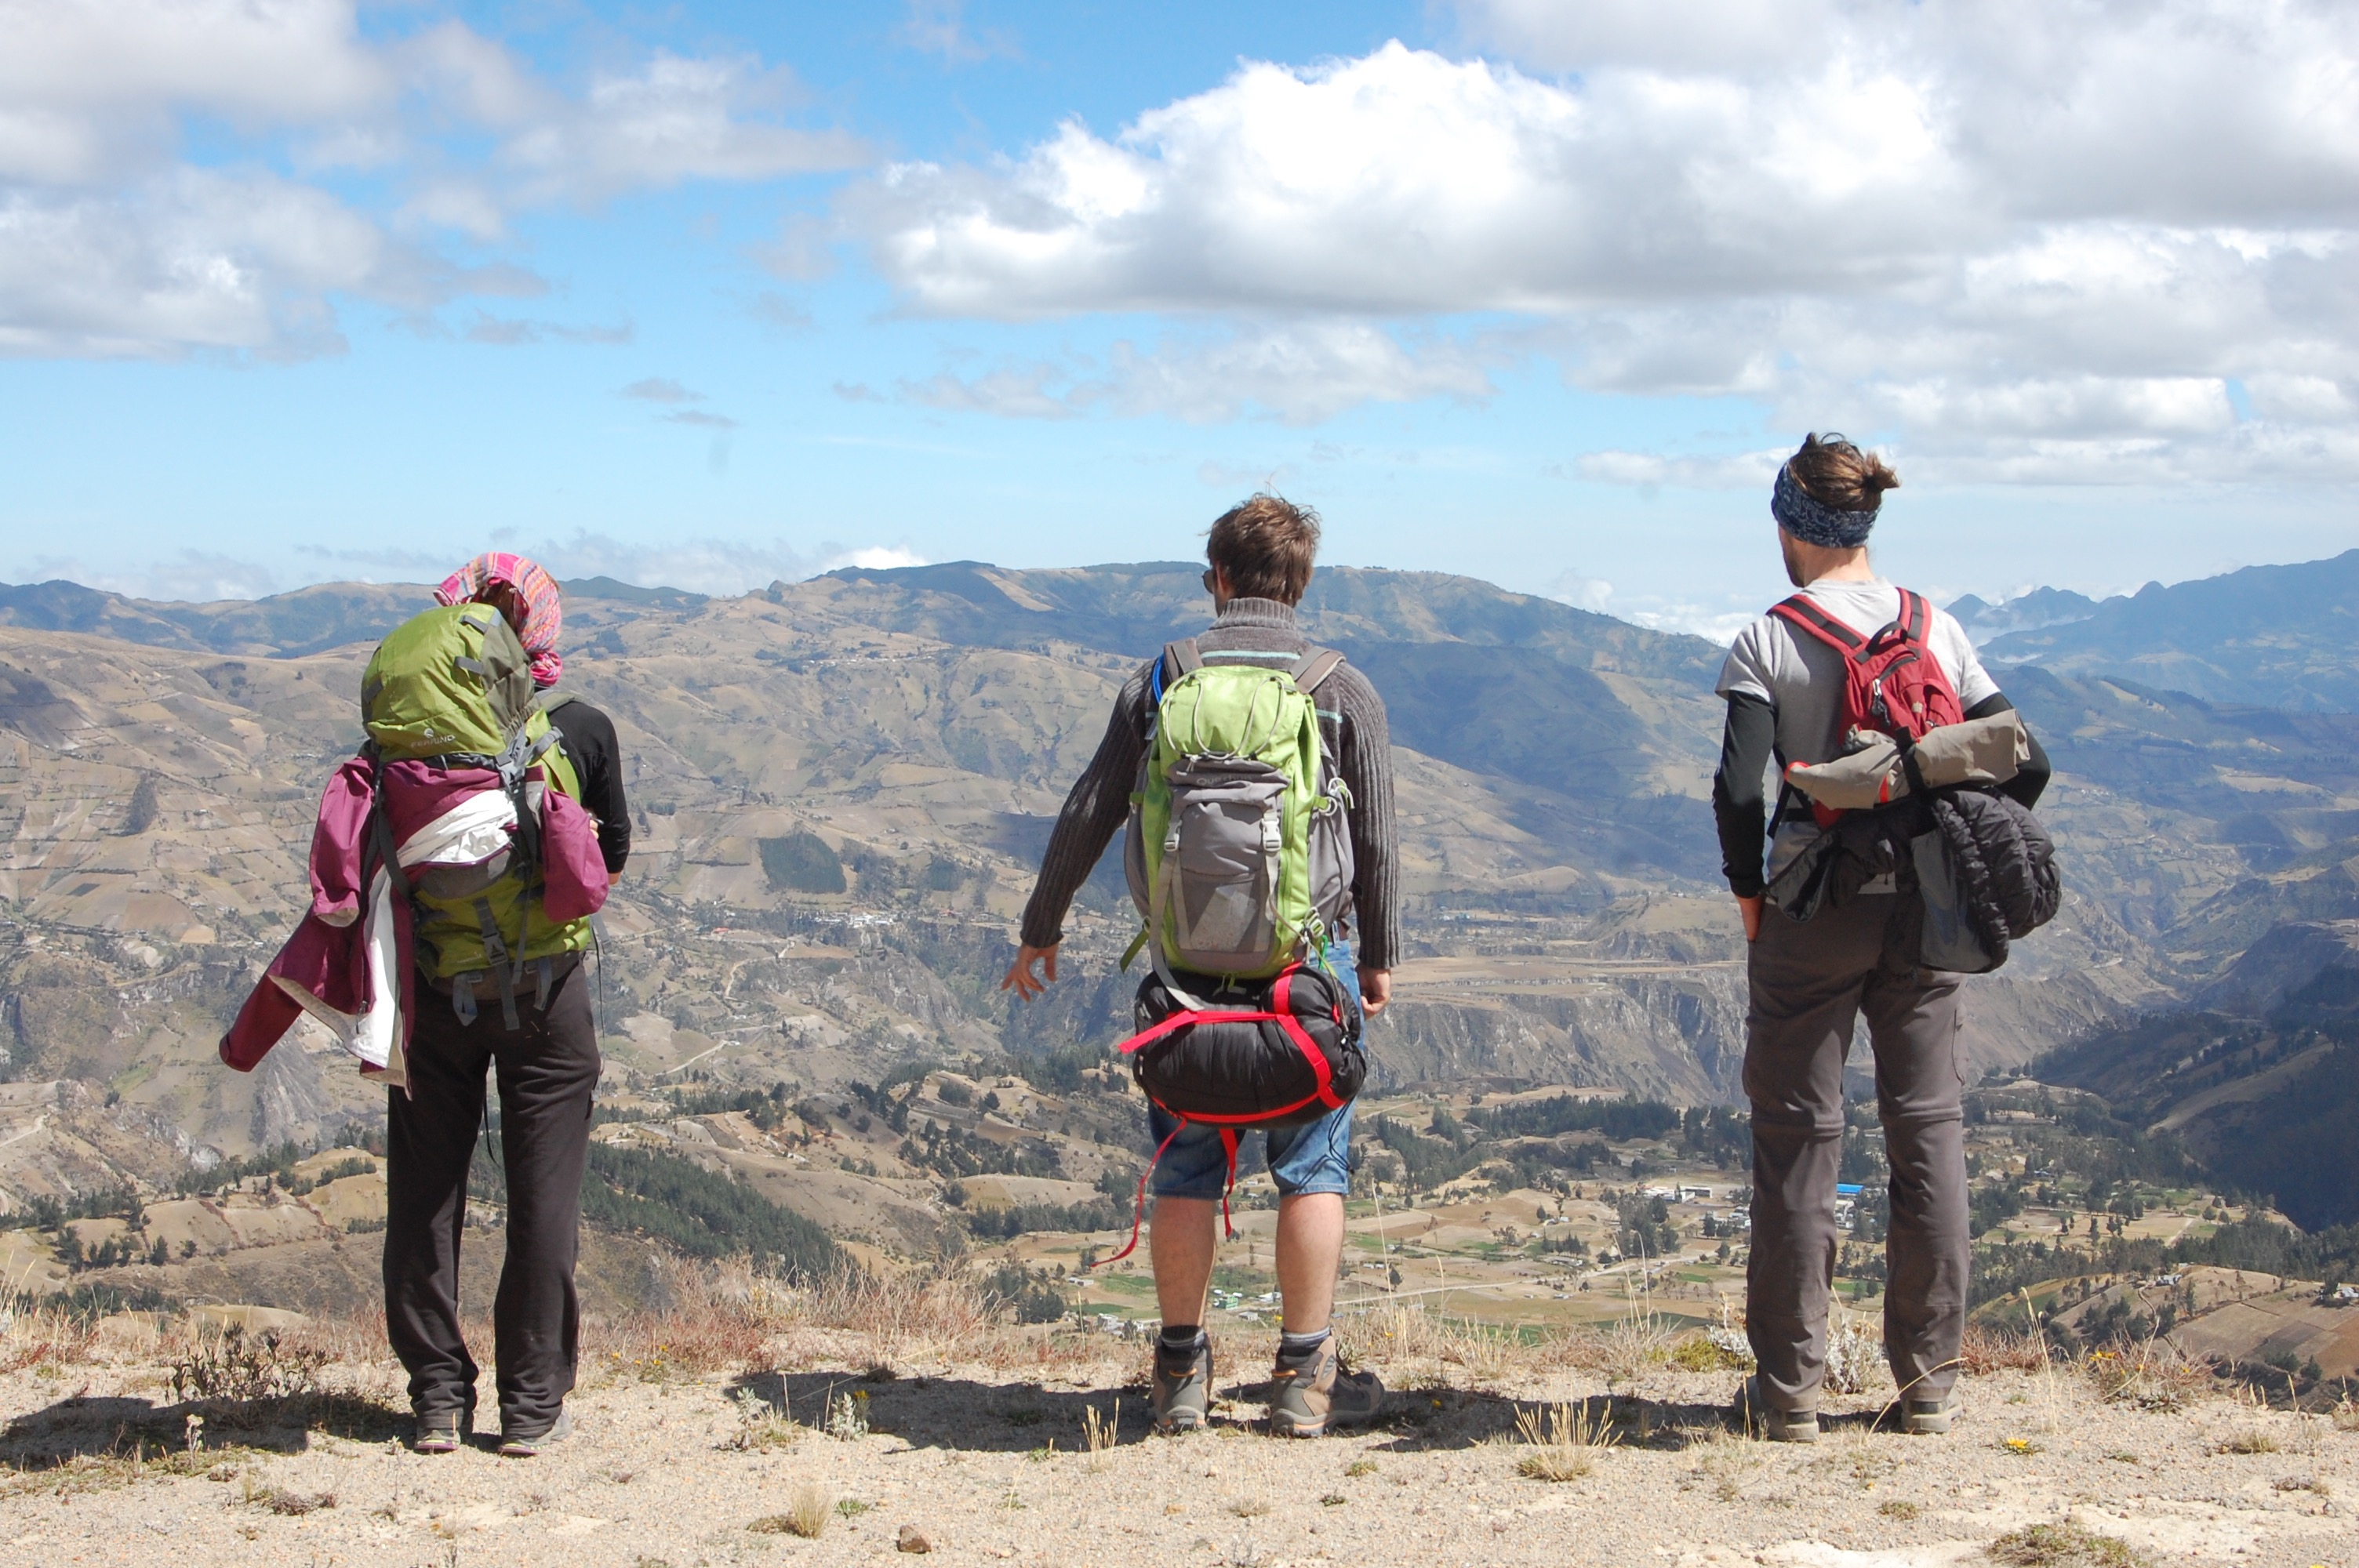 Checking Out the Views on the Quilotoa Loop, Ecuador